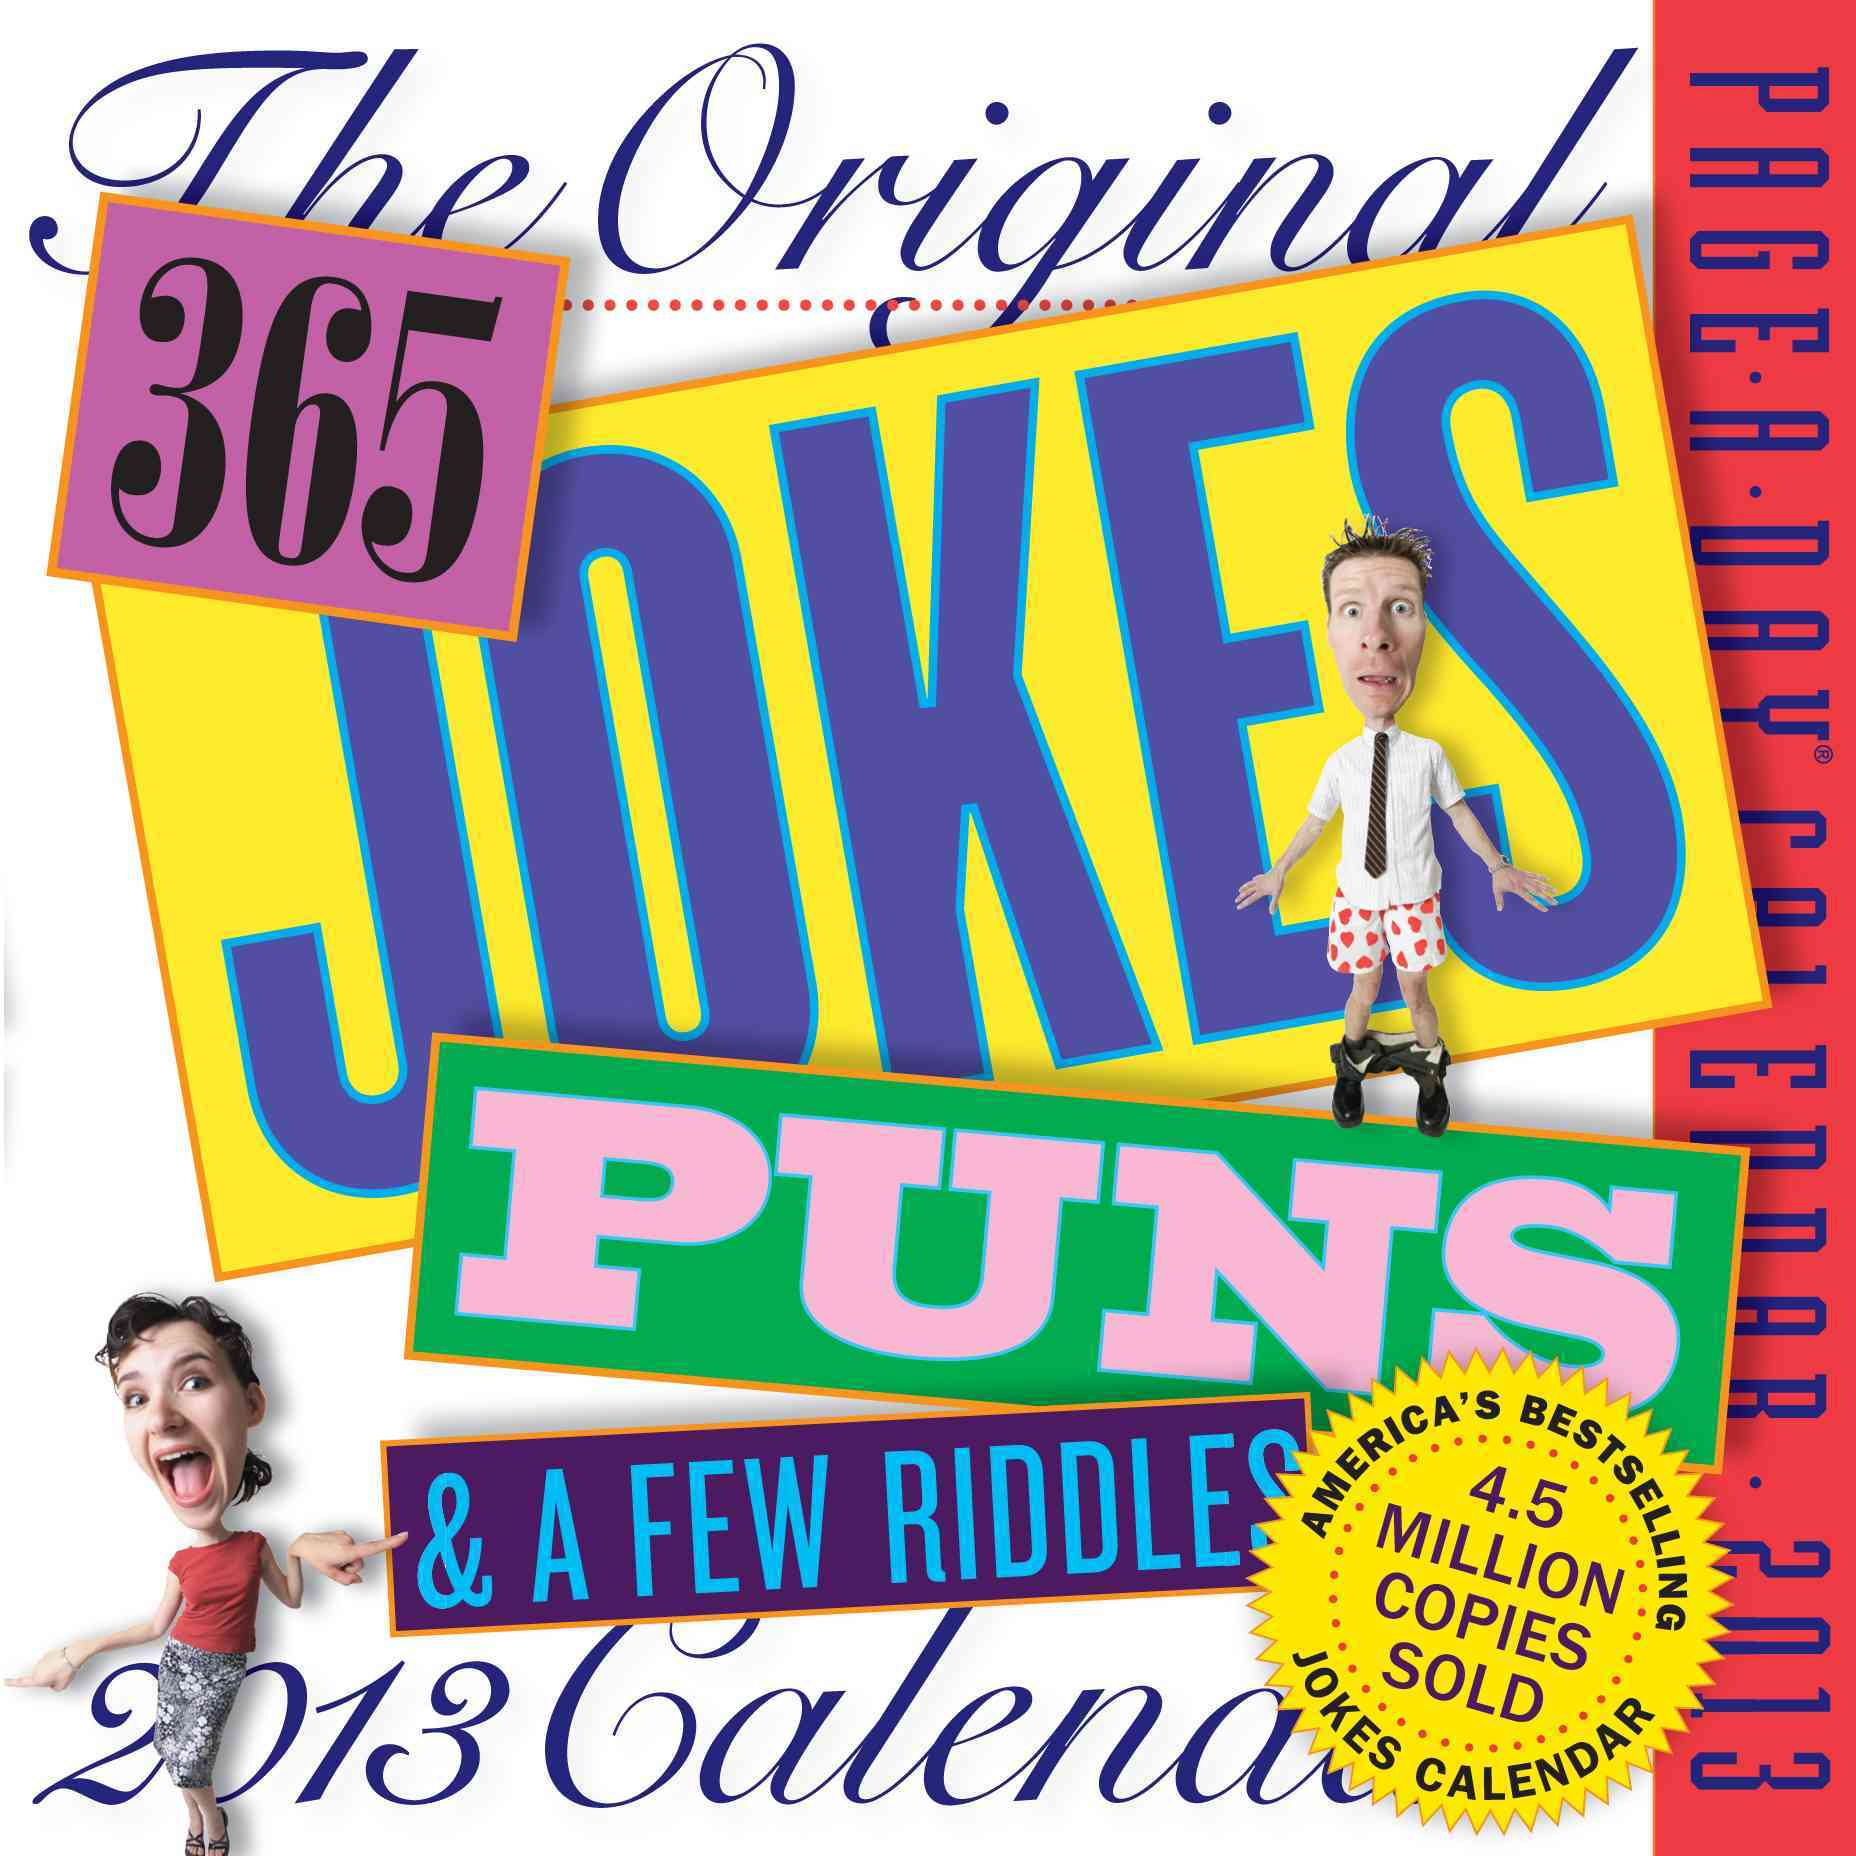 The Original 365 Jokes, Puns & a Few Riddles 2013 Calendar